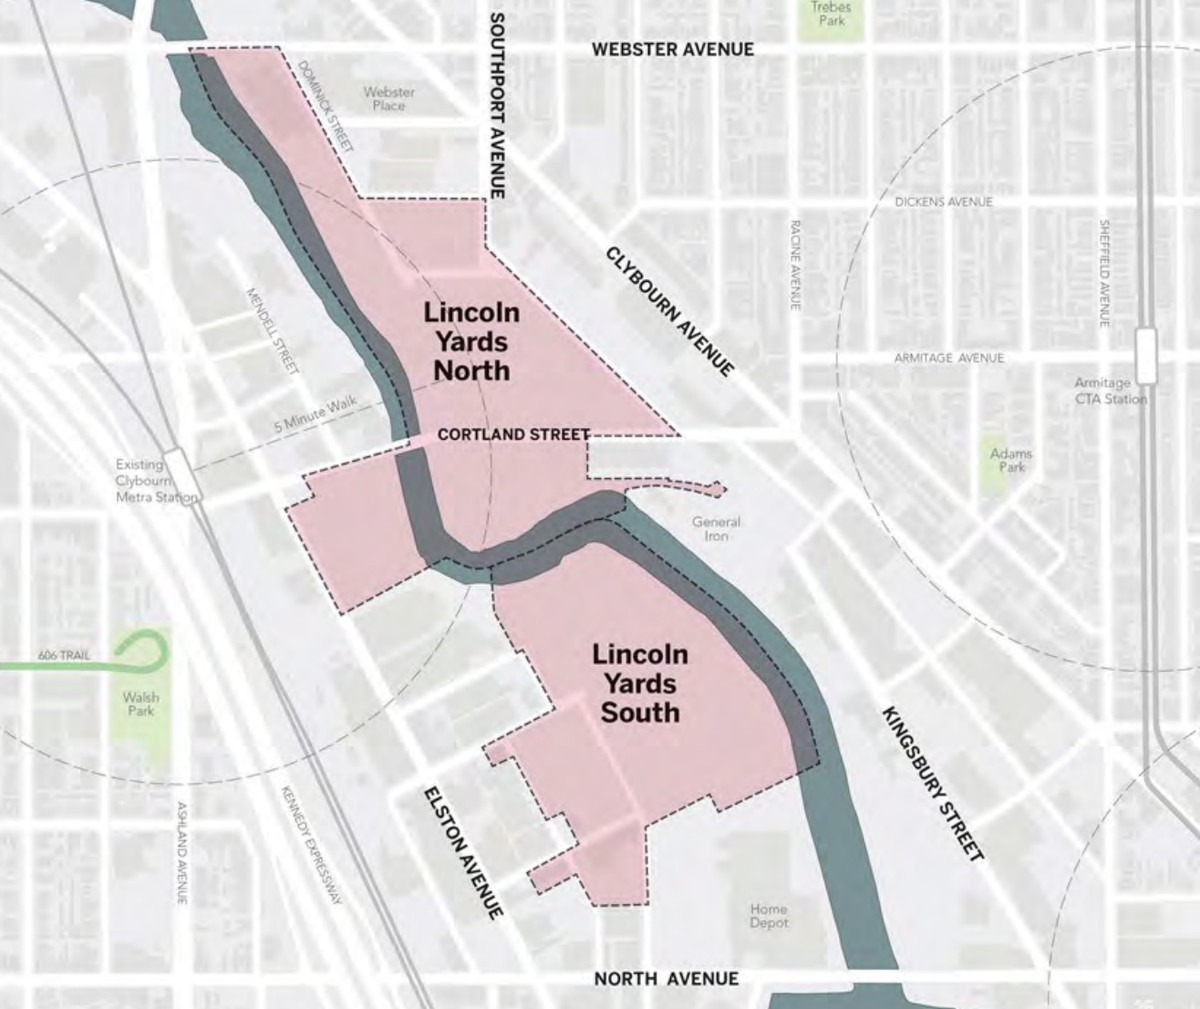 Lincoln Yards update: Zoning vote later this month - Curbed ... on chicago attraction map interactive click, chicago cemetery map, chicago zones, chicago residential parking permit, chicago and surrounding suburbs maps, chicago municipal code, chicago temperature map, chicago arcology map, chicago permit parking map, chicago annexation map, chicago budget, chicago street index, chicago topography map, chicago construction map, chicago submarket map, denver rtd light rail route map, a long way from chicago map, chicago metra system map, chicago zip code map printable, chicago watershed map,